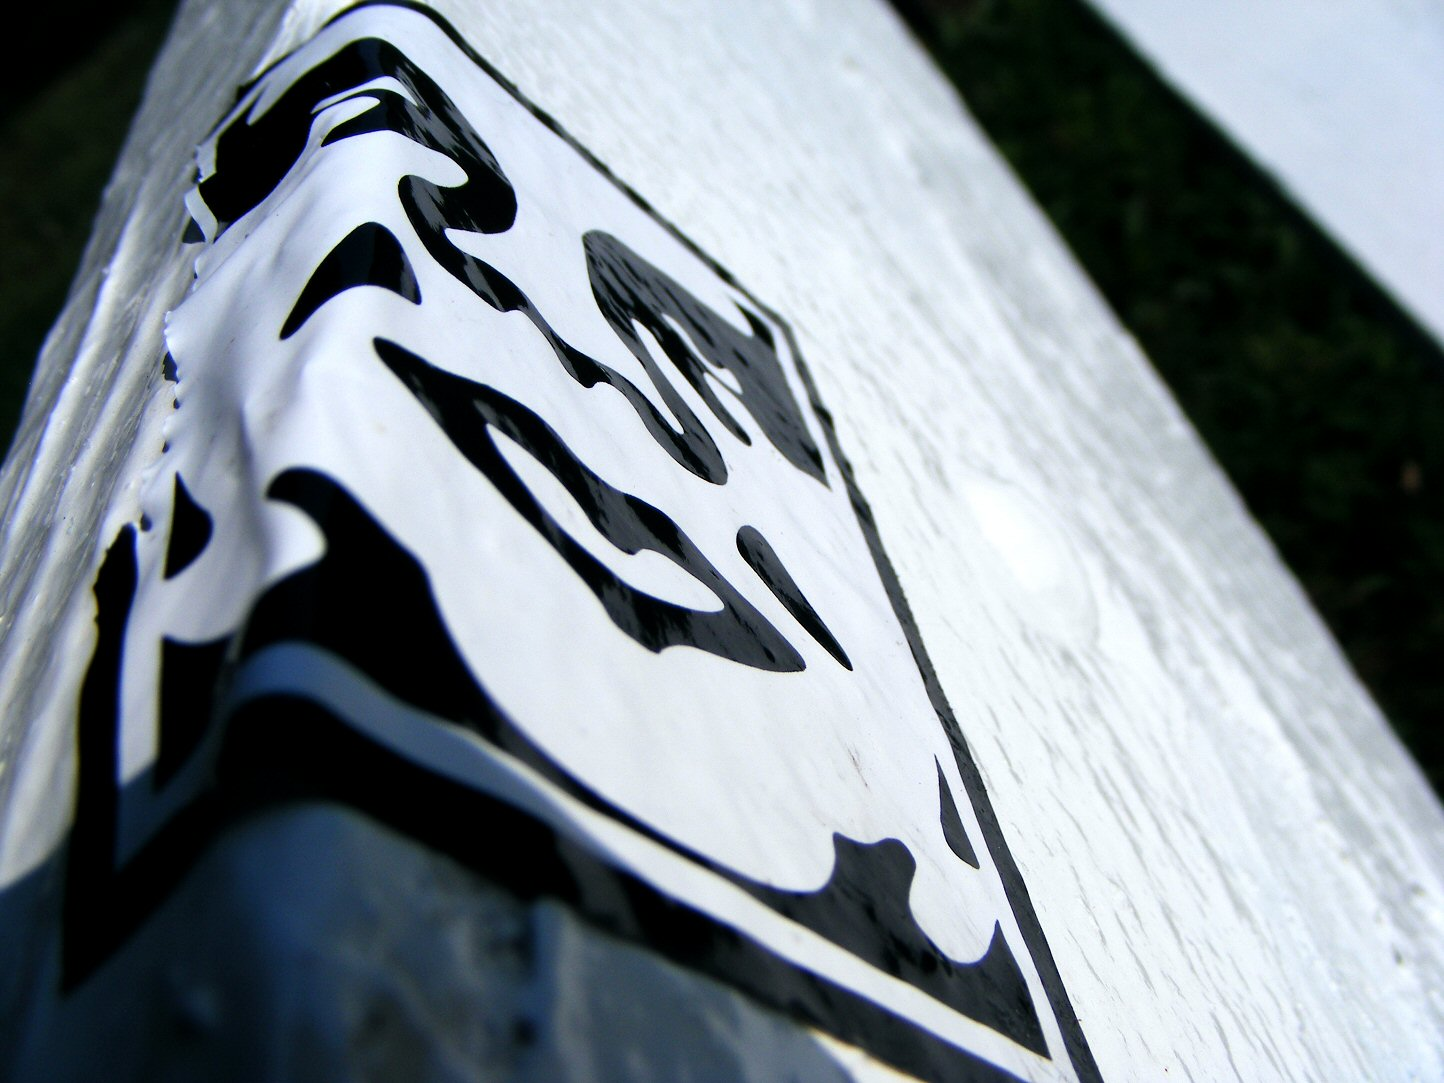 Macro Sticker on a Park Bench